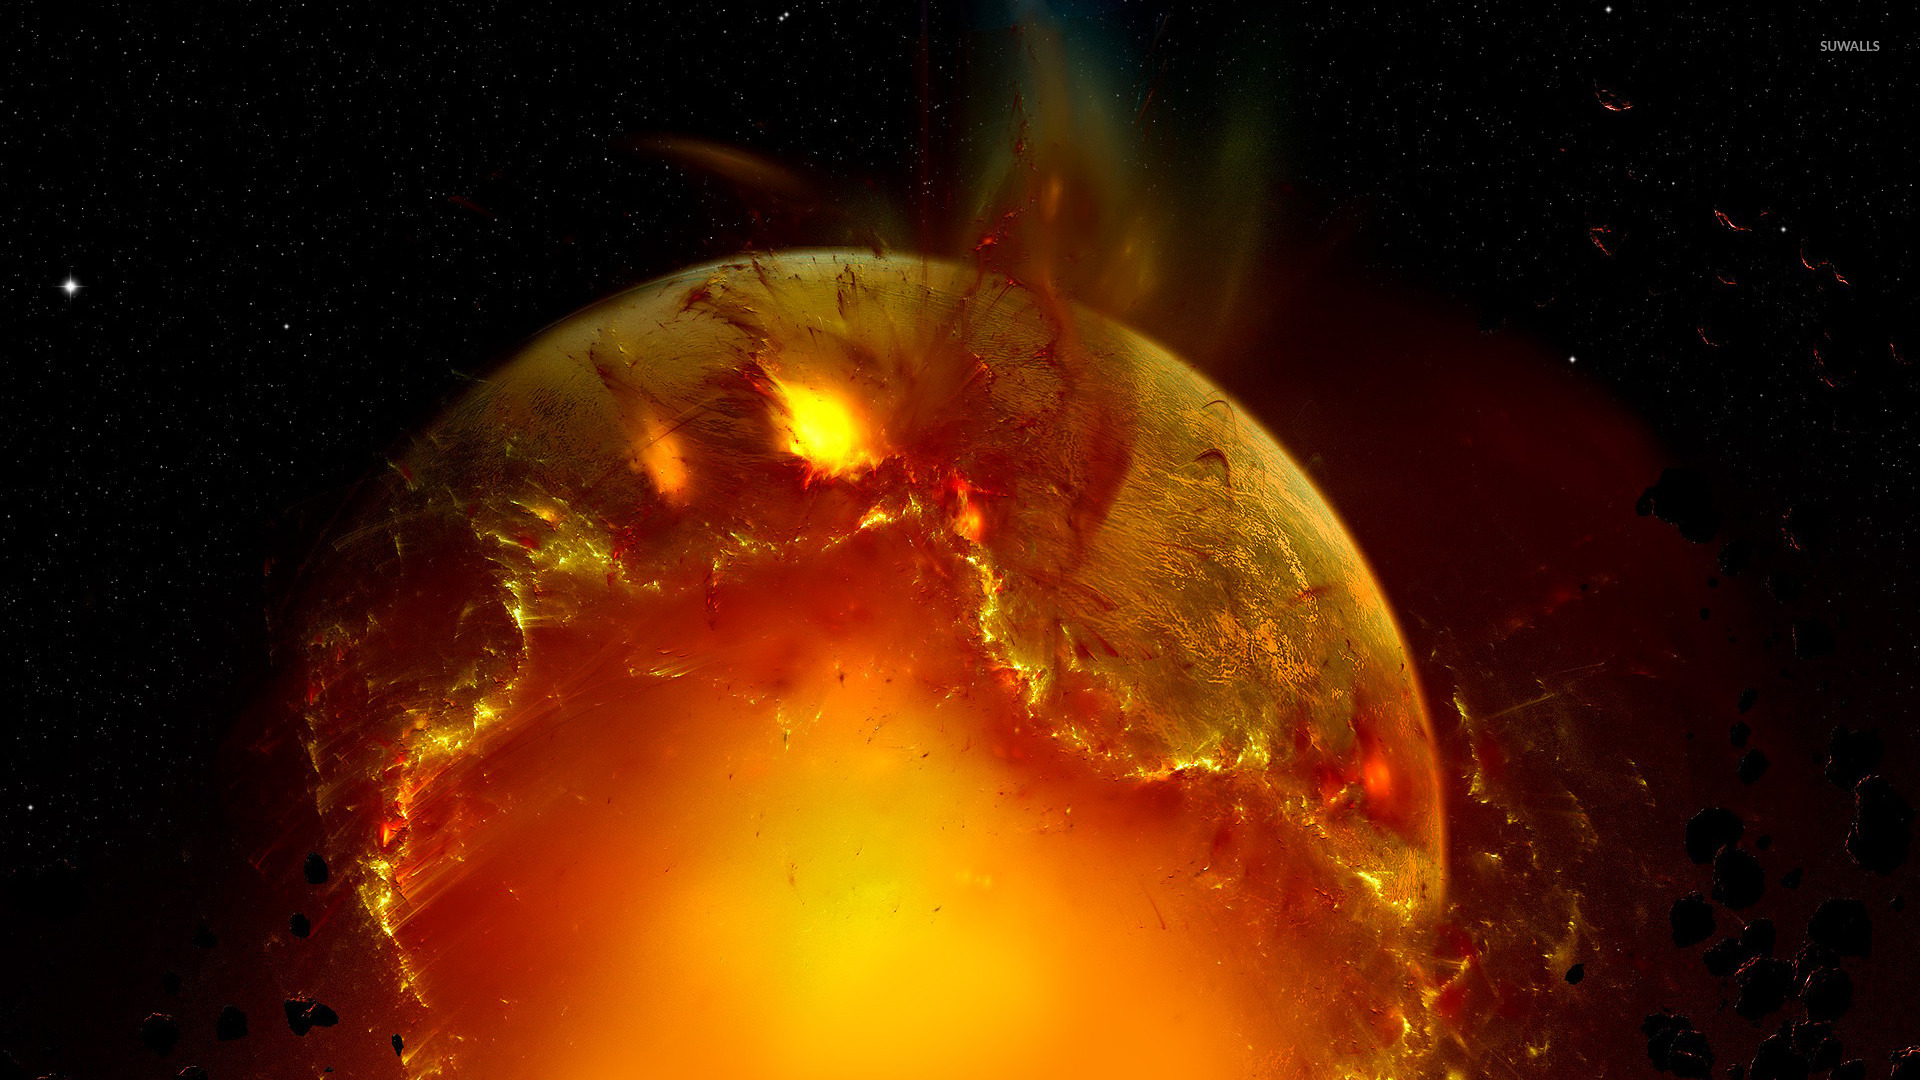 Exploding planet [11] wallpaper - Fantasy wallpapers - #20938